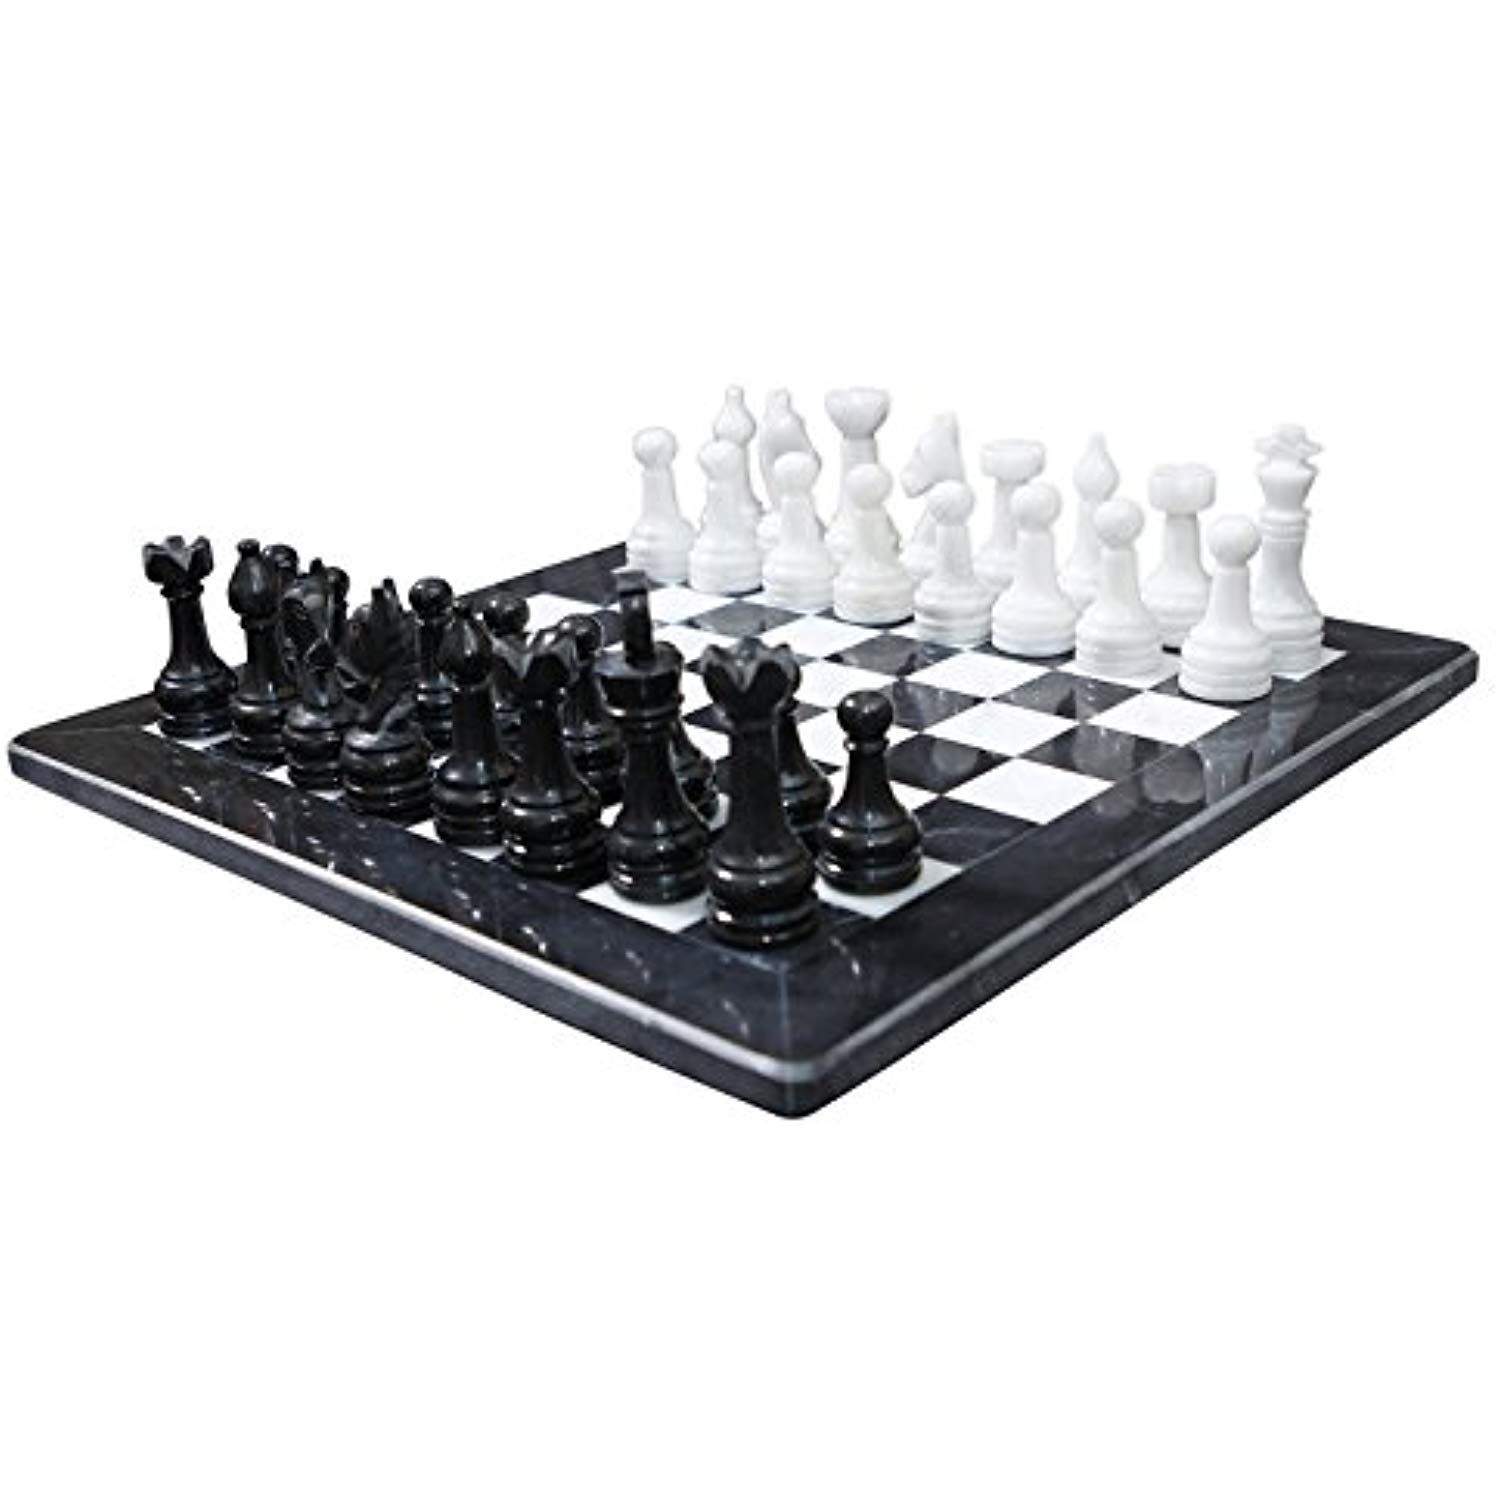 Chess /& Sorry Replacement Halma Pawn Markers, Colored School Classroom Supplies, Arts /& Crafts Projects, Teaching /& Education Toy Resource Components, Extra Instructional Play Material Plastic Pawns Set of 36 White Color Board Game Playing Pieces